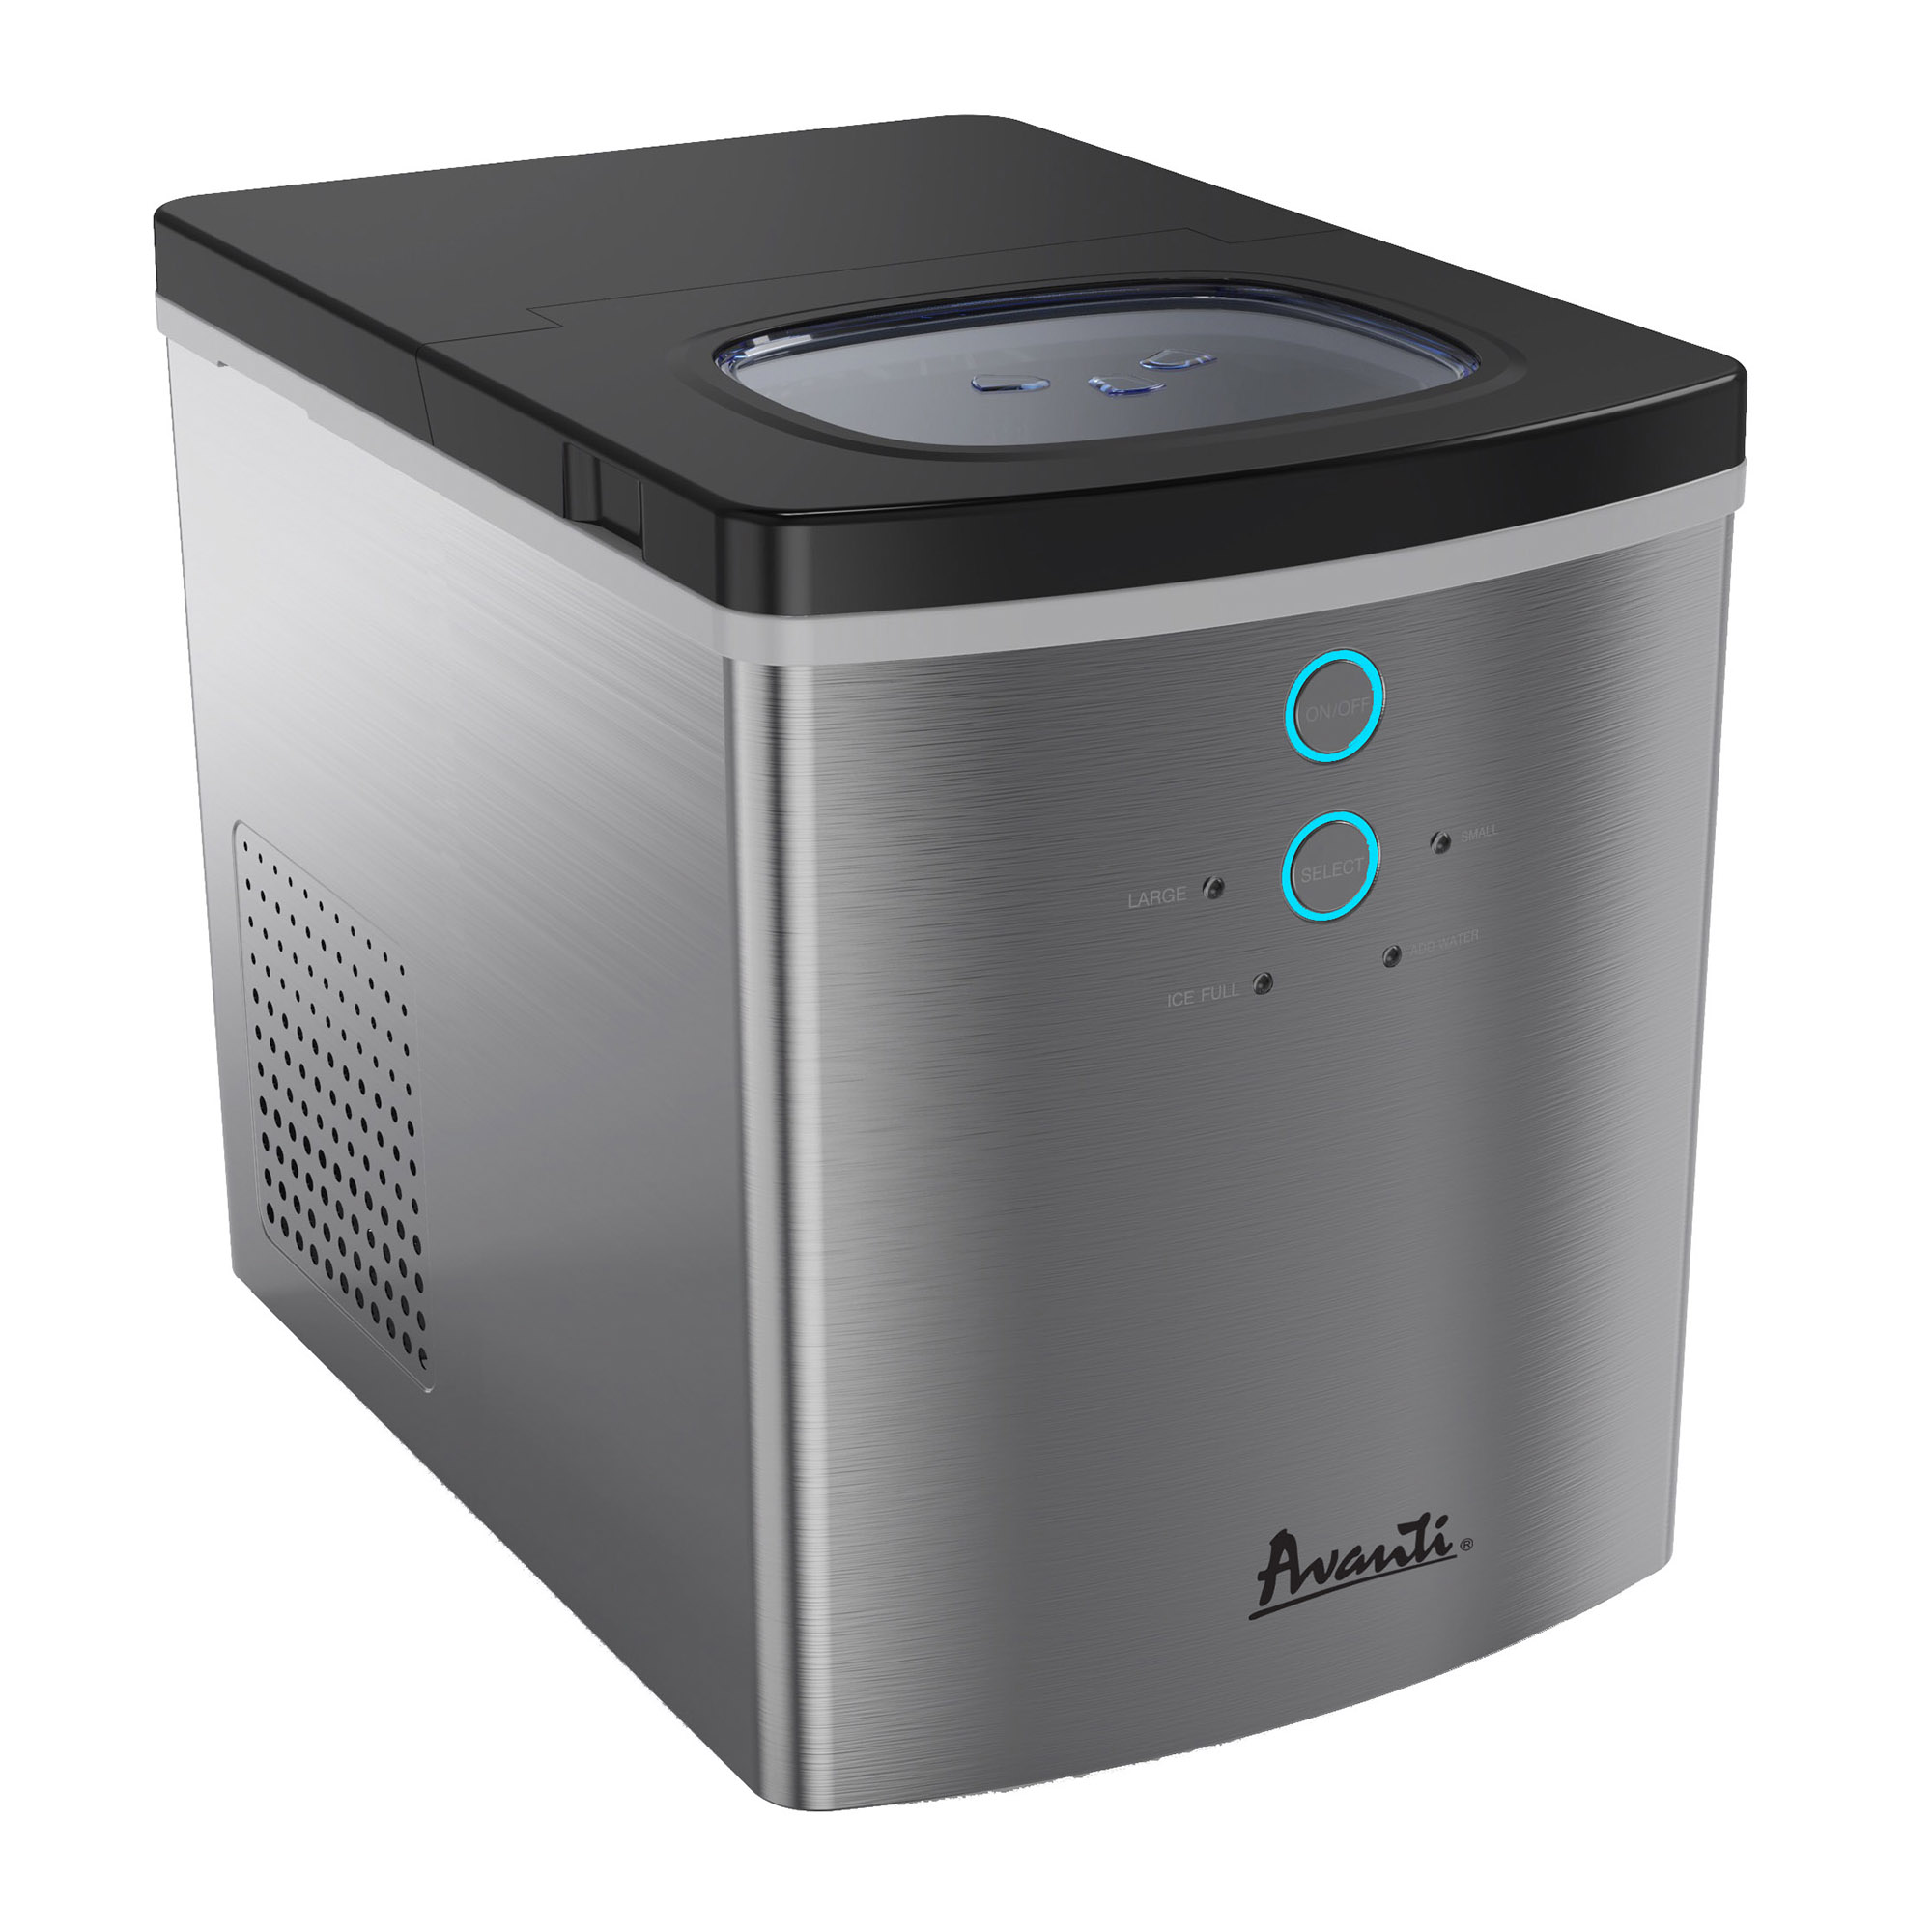 Avanti Portable Countertop Ice Maker, Stainless Steel photo